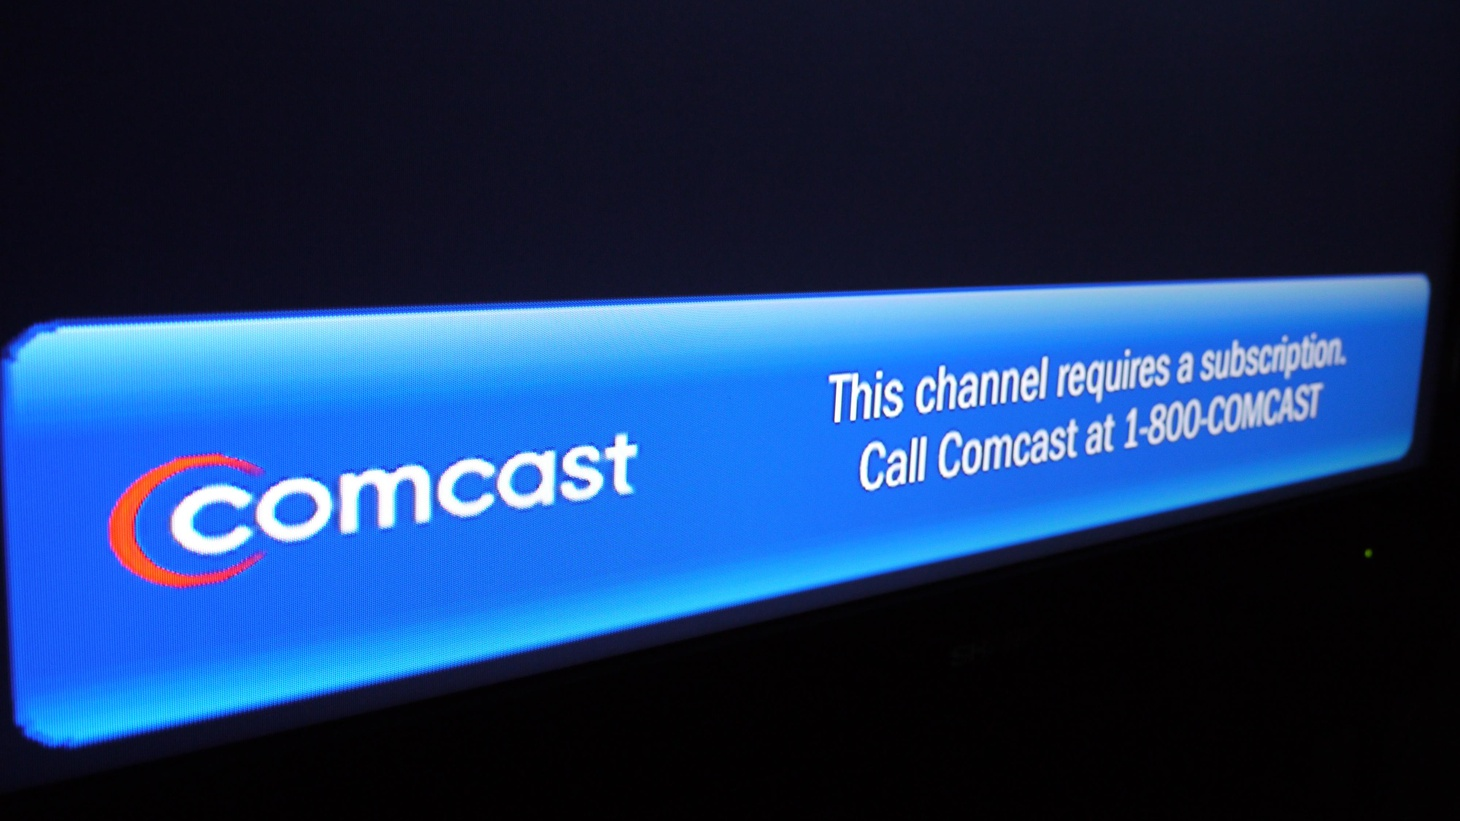 Comcast wants to acquire Time-Warner Cable, photojournalism in Afghanistan, gaining weight in a relationship, and radio responds to internet streaming services.